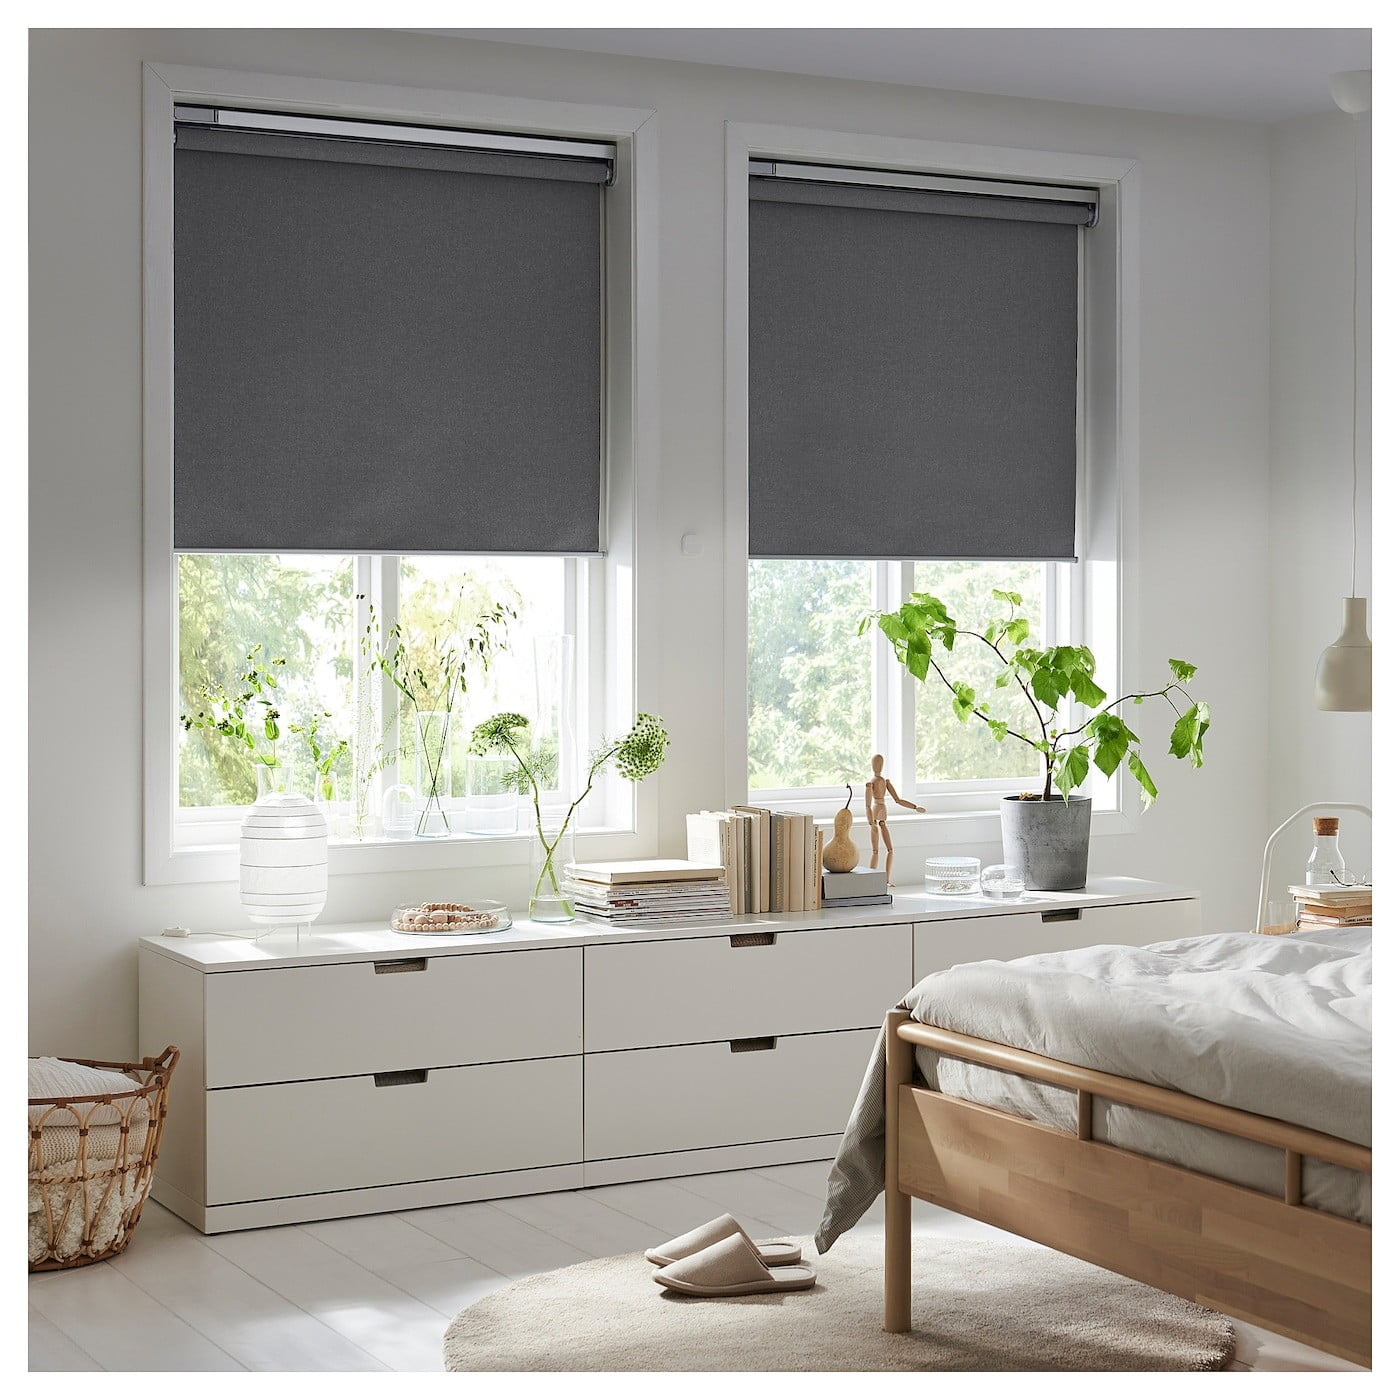 Ikea's smart blinds finally go on sale in the U.S., but only in certain stores